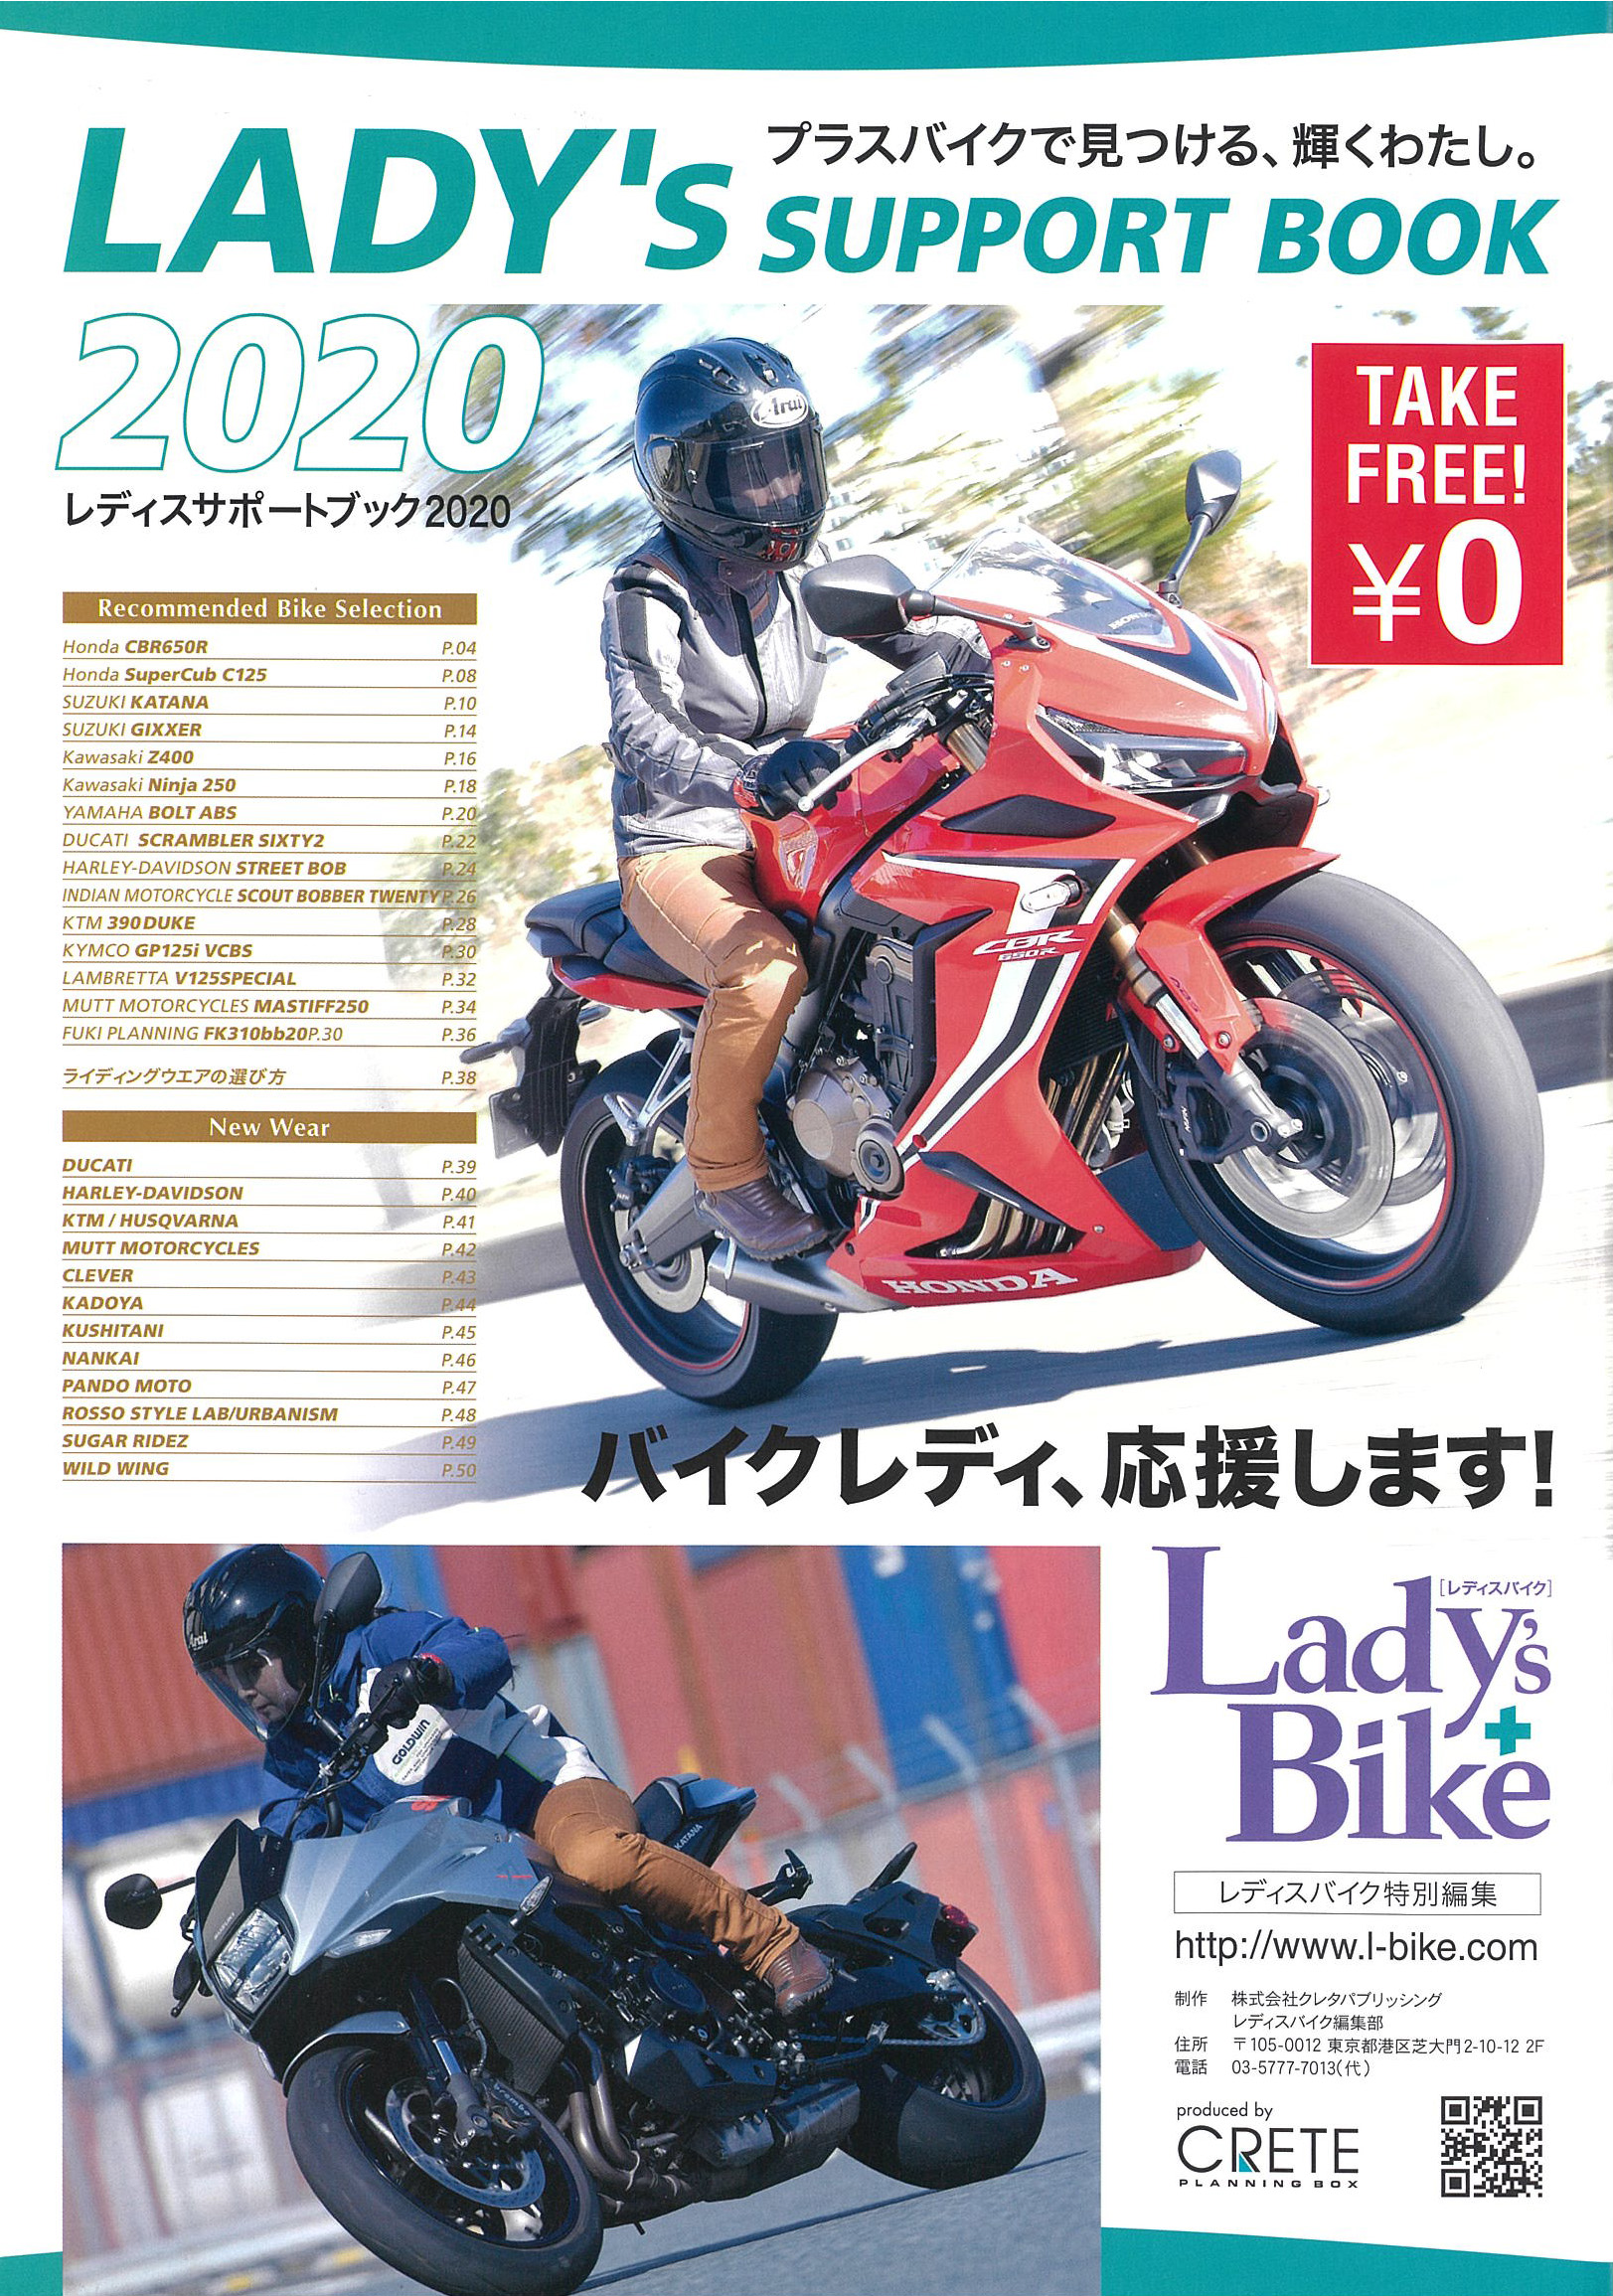 【LADY'S SUPPORT BOOK2020掲載】Lambretta V125Special、PANDO MOTO